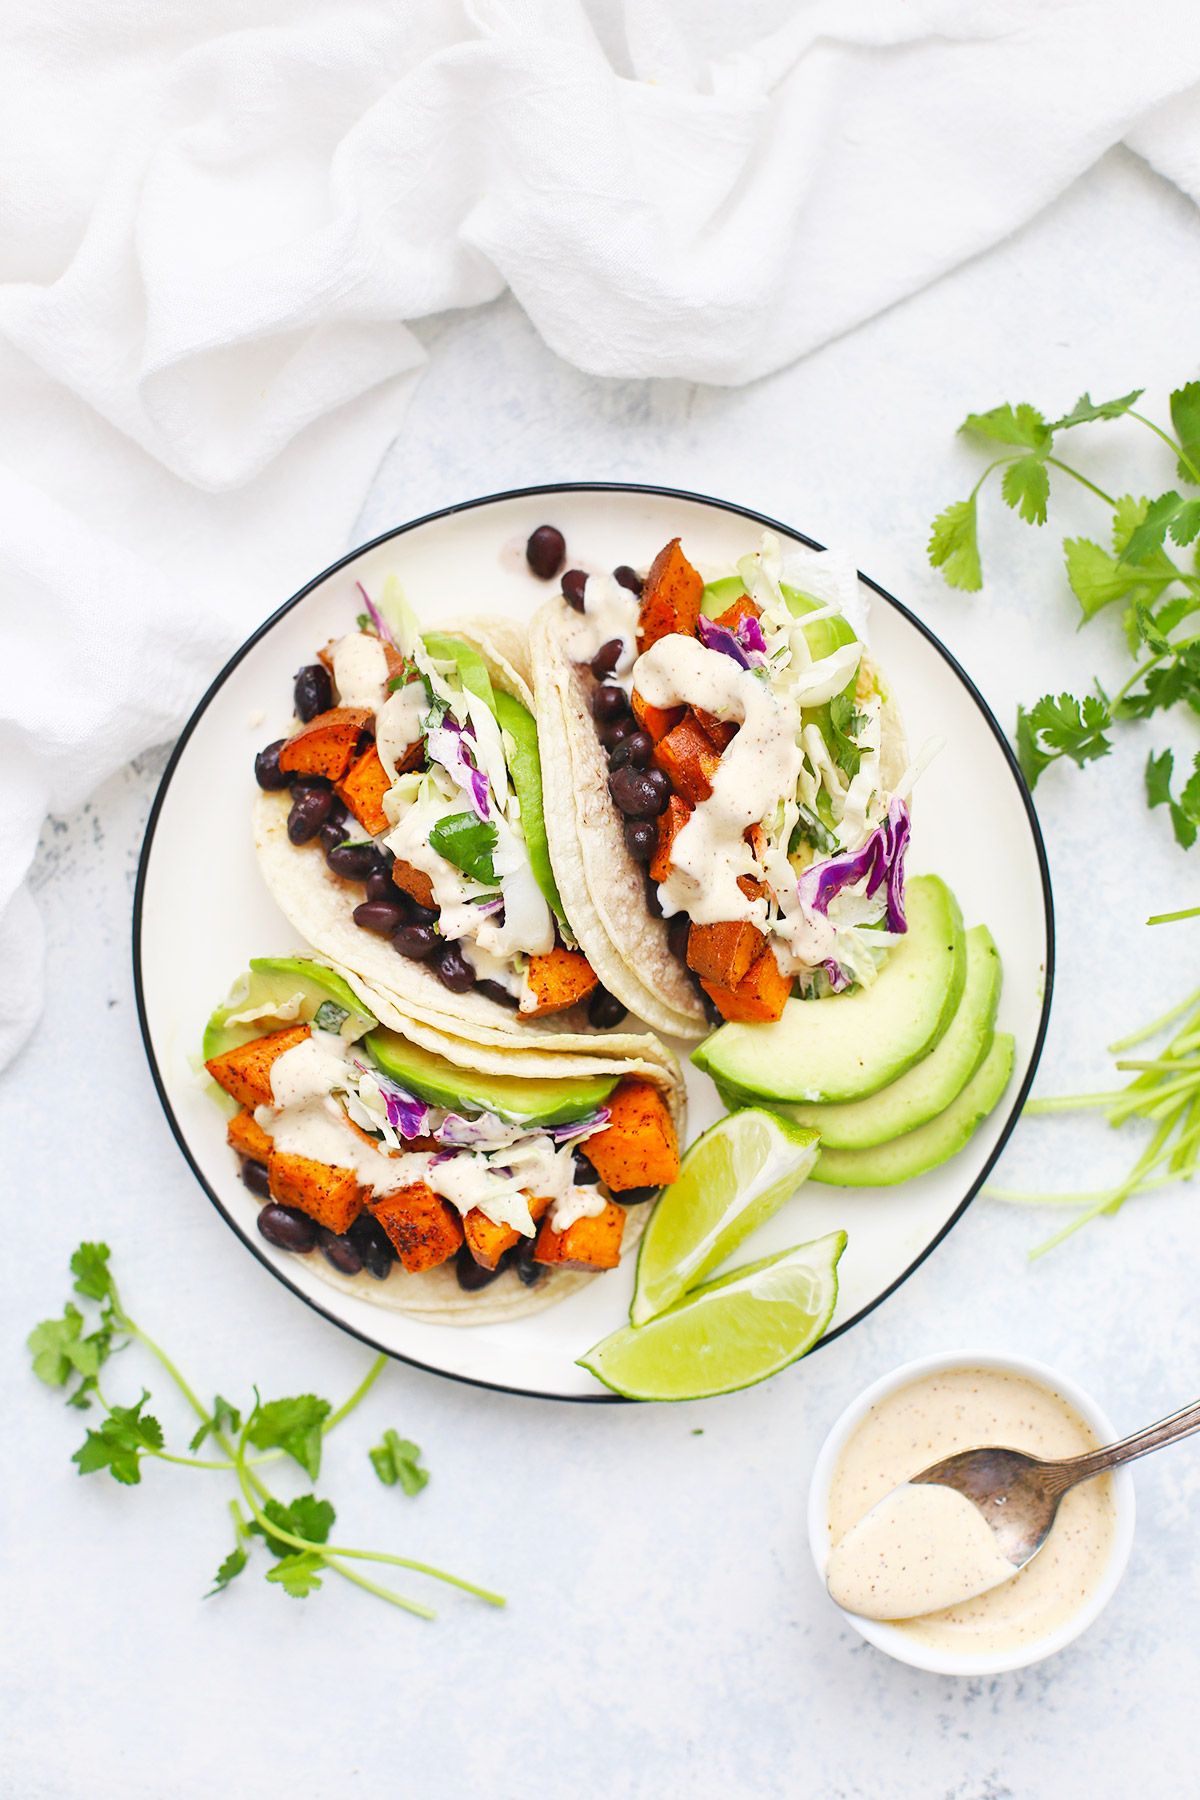 Sweet Potato Black Bean Tacos from One Lovely Life